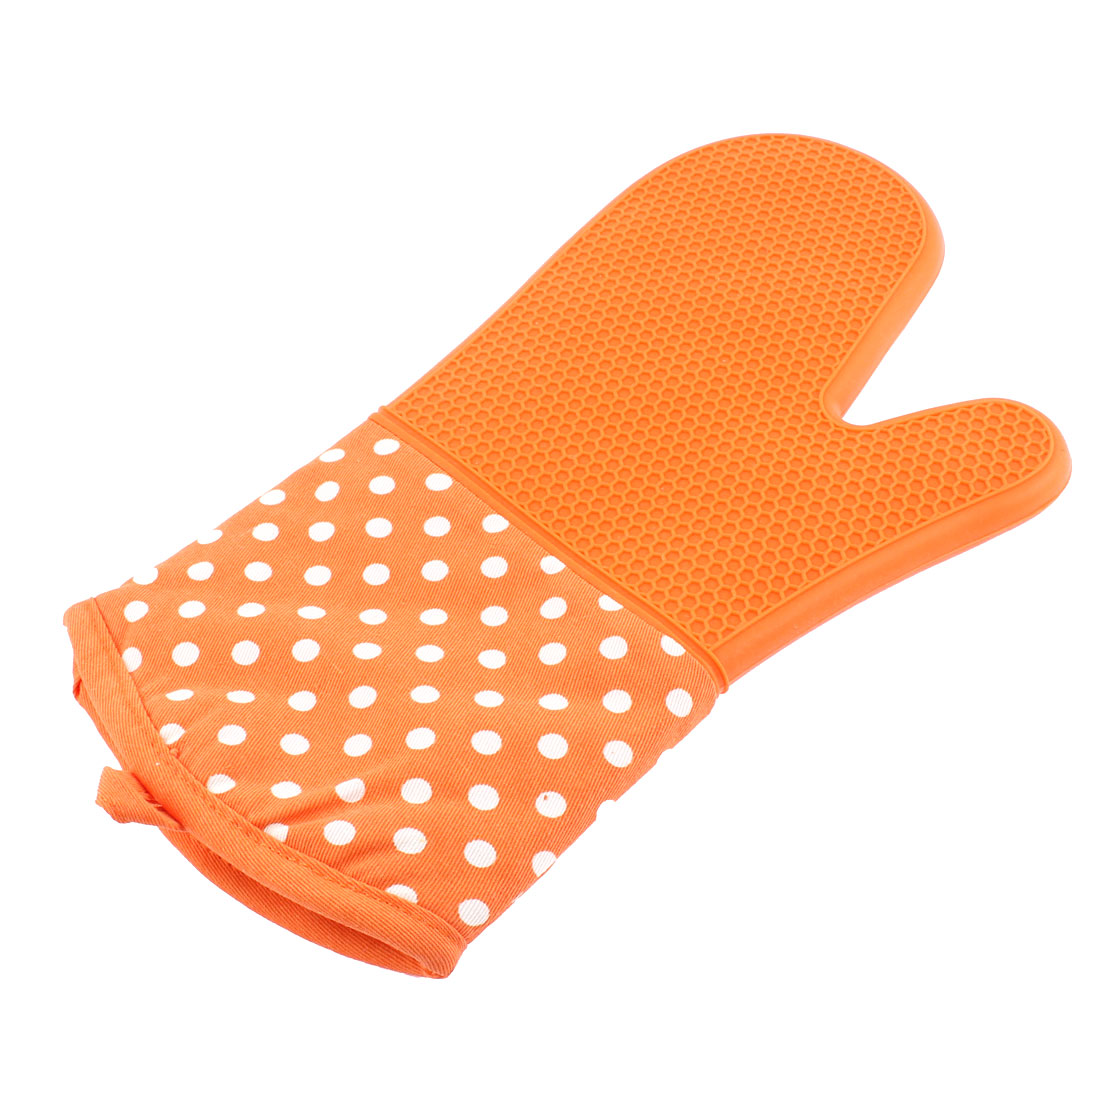 Microwave Oven Baking Dots Pattern Heat Resistance Glove Orange